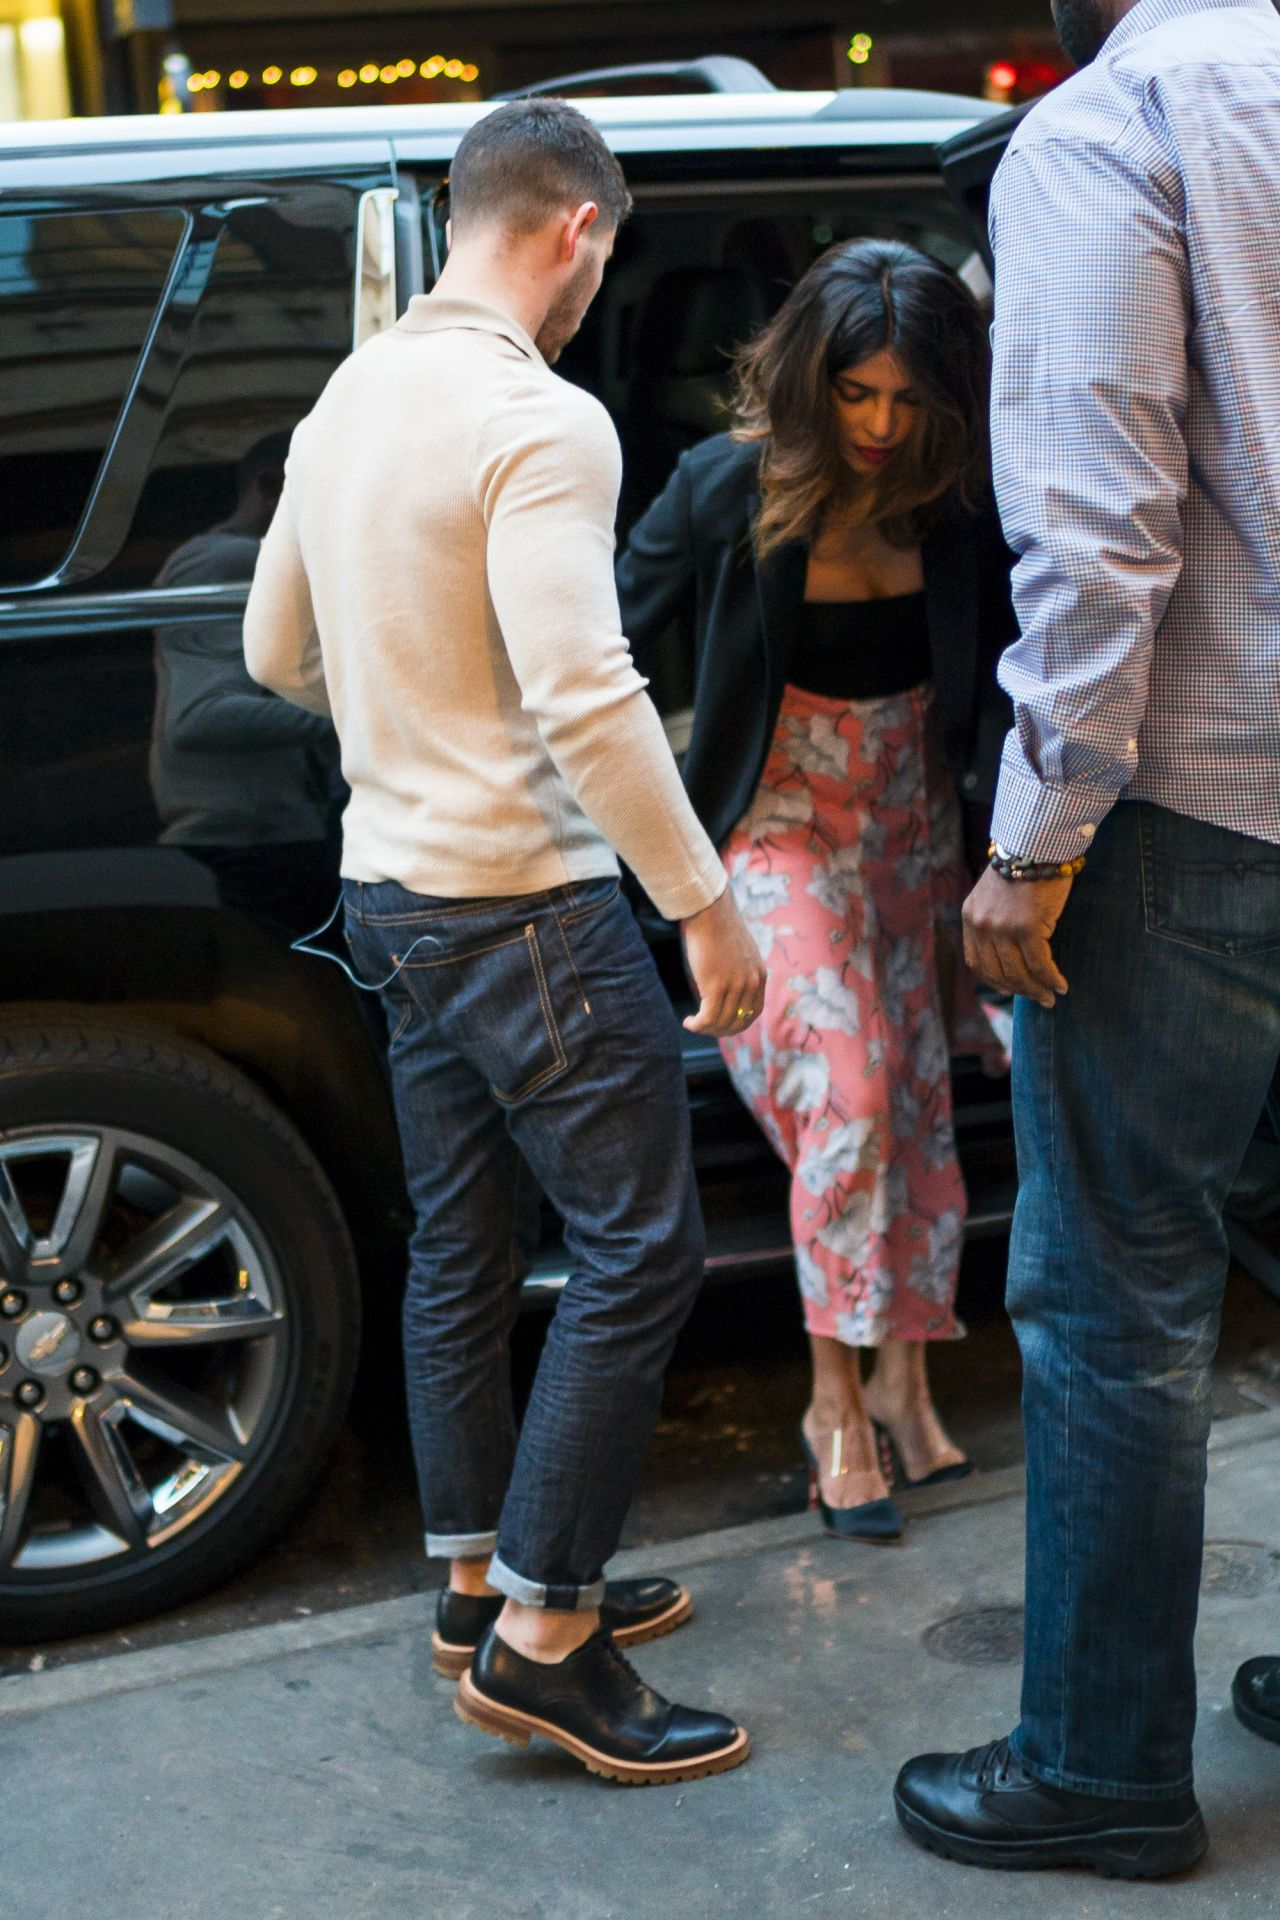 http://celebmafia.com/wp-content/uploads/2018/06/priyanka-chopra-and-nick-jonas-on-a-date-in-nyc-06-11-2018-4.jpg